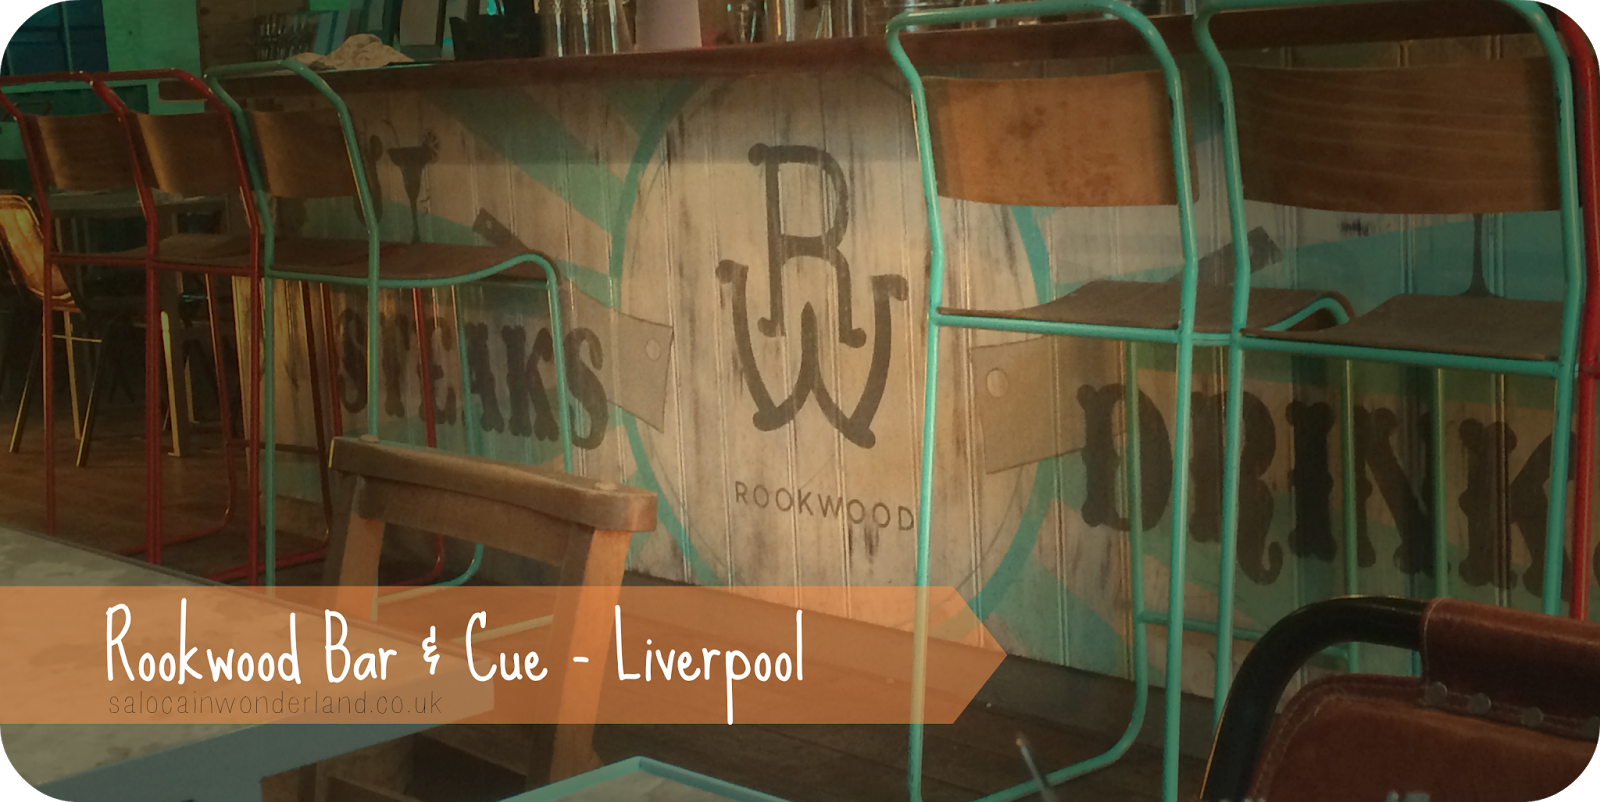 Rookwood Bar & Cue Liverpool Review